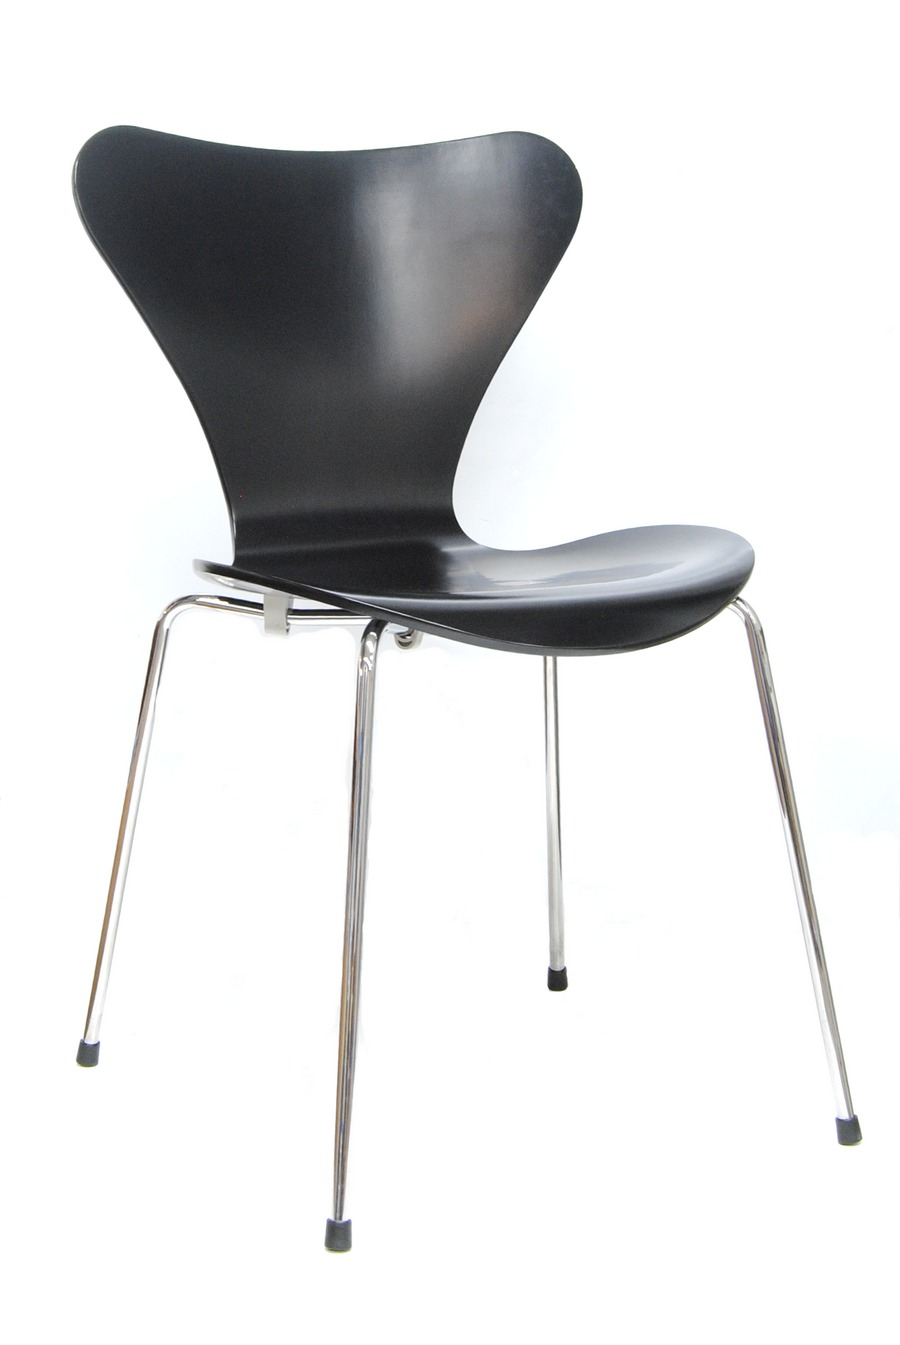 fritz hansen designer stuhl serie 7 schwarz arne jacobsen 3107 ebay. Black Bedroom Furniture Sets. Home Design Ideas